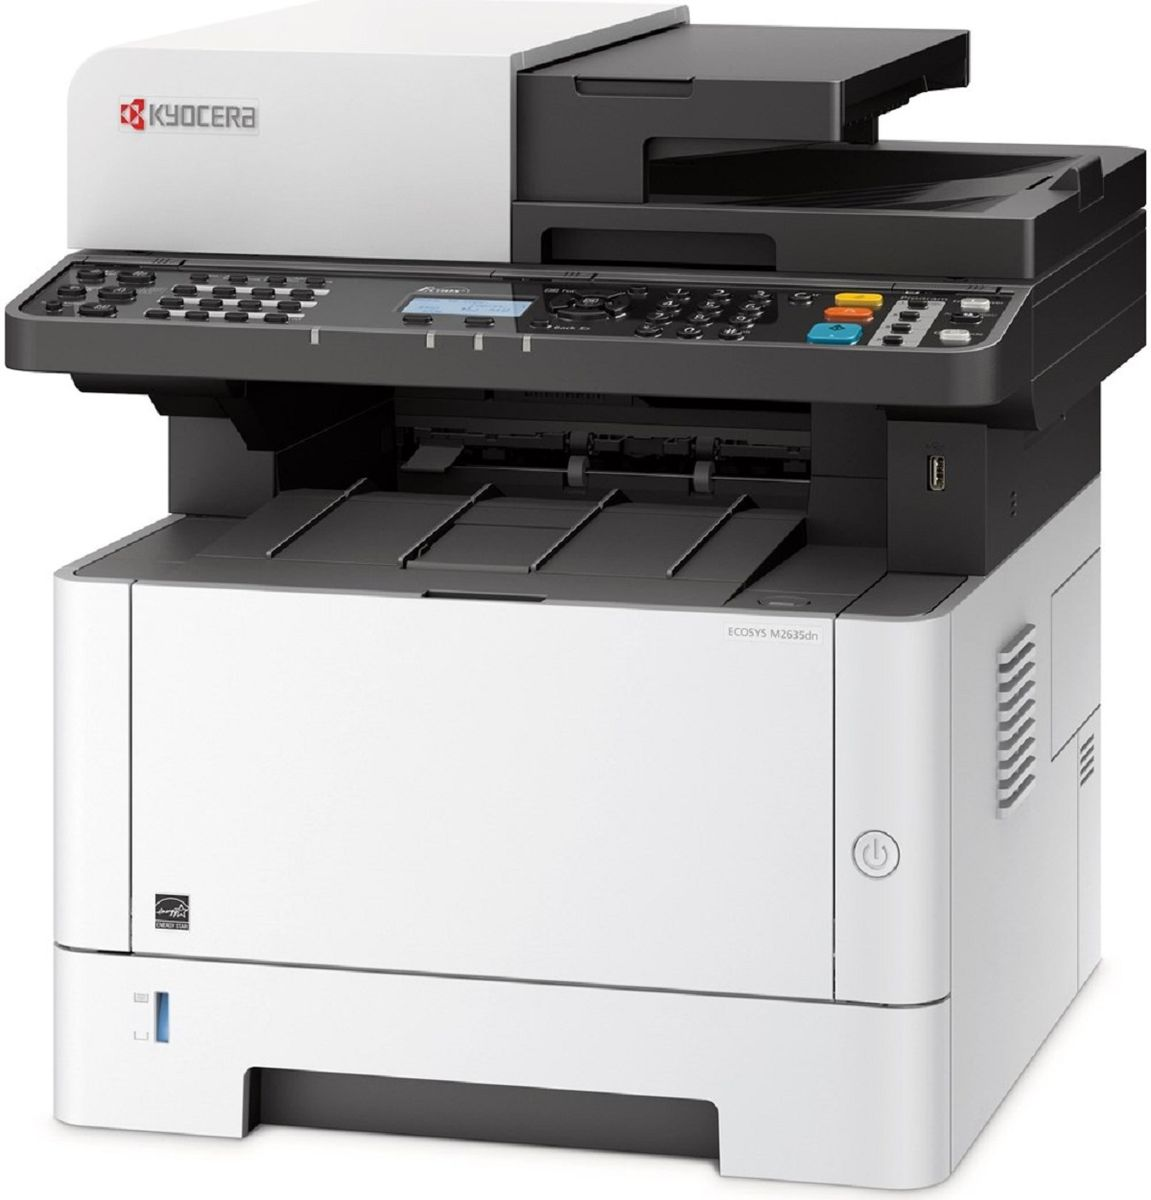 Kyocera Ecosys M2040dn МФУ мфу kyocera ecosys m2135dn